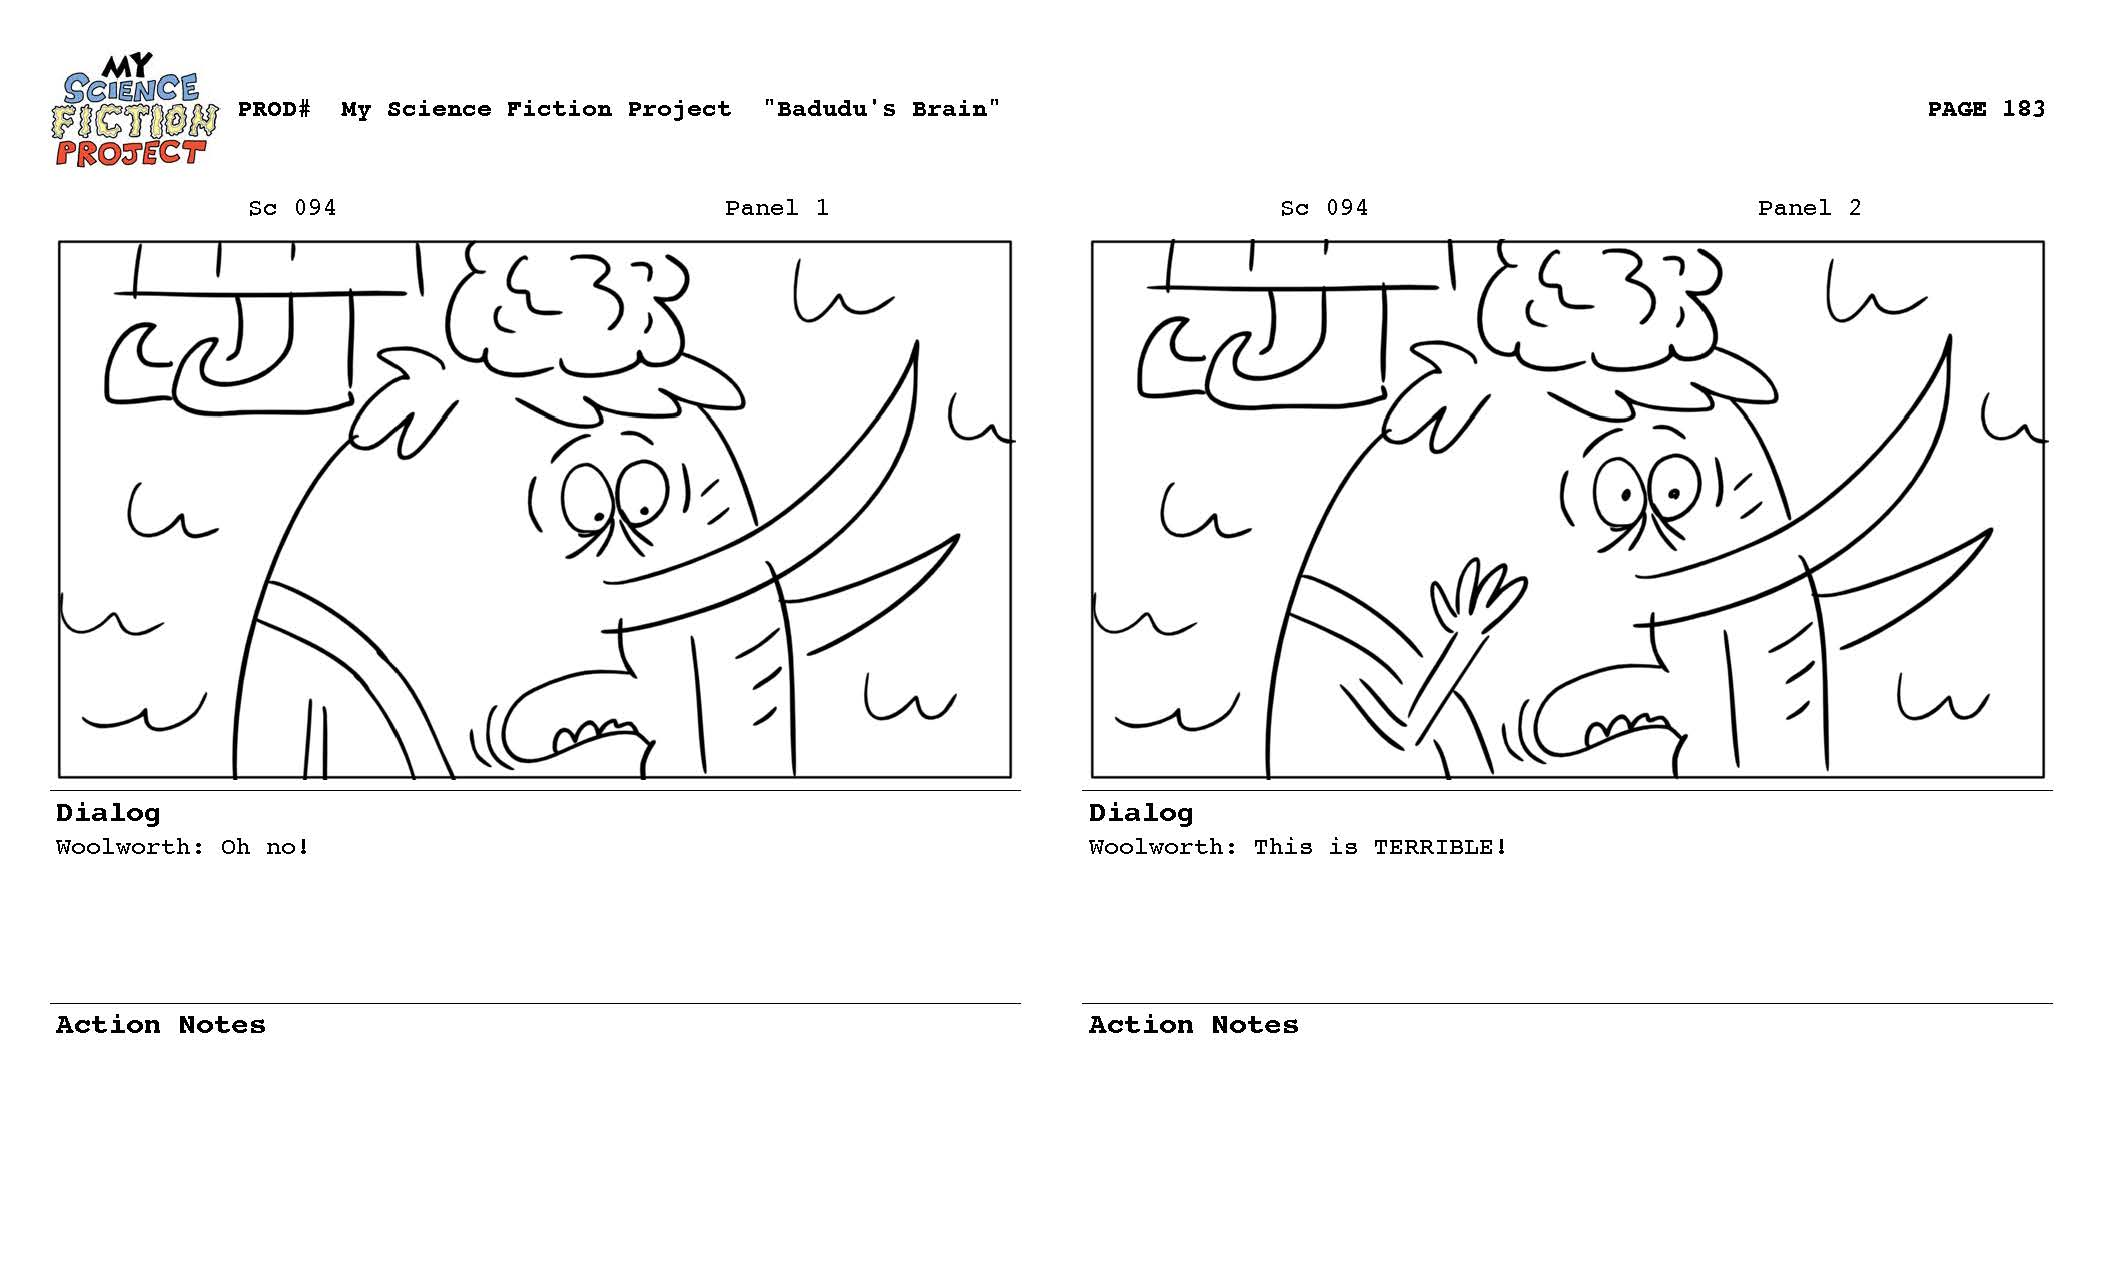 My_Science_Fiction_Project_SB_083112_reduced_Page_183.jpg